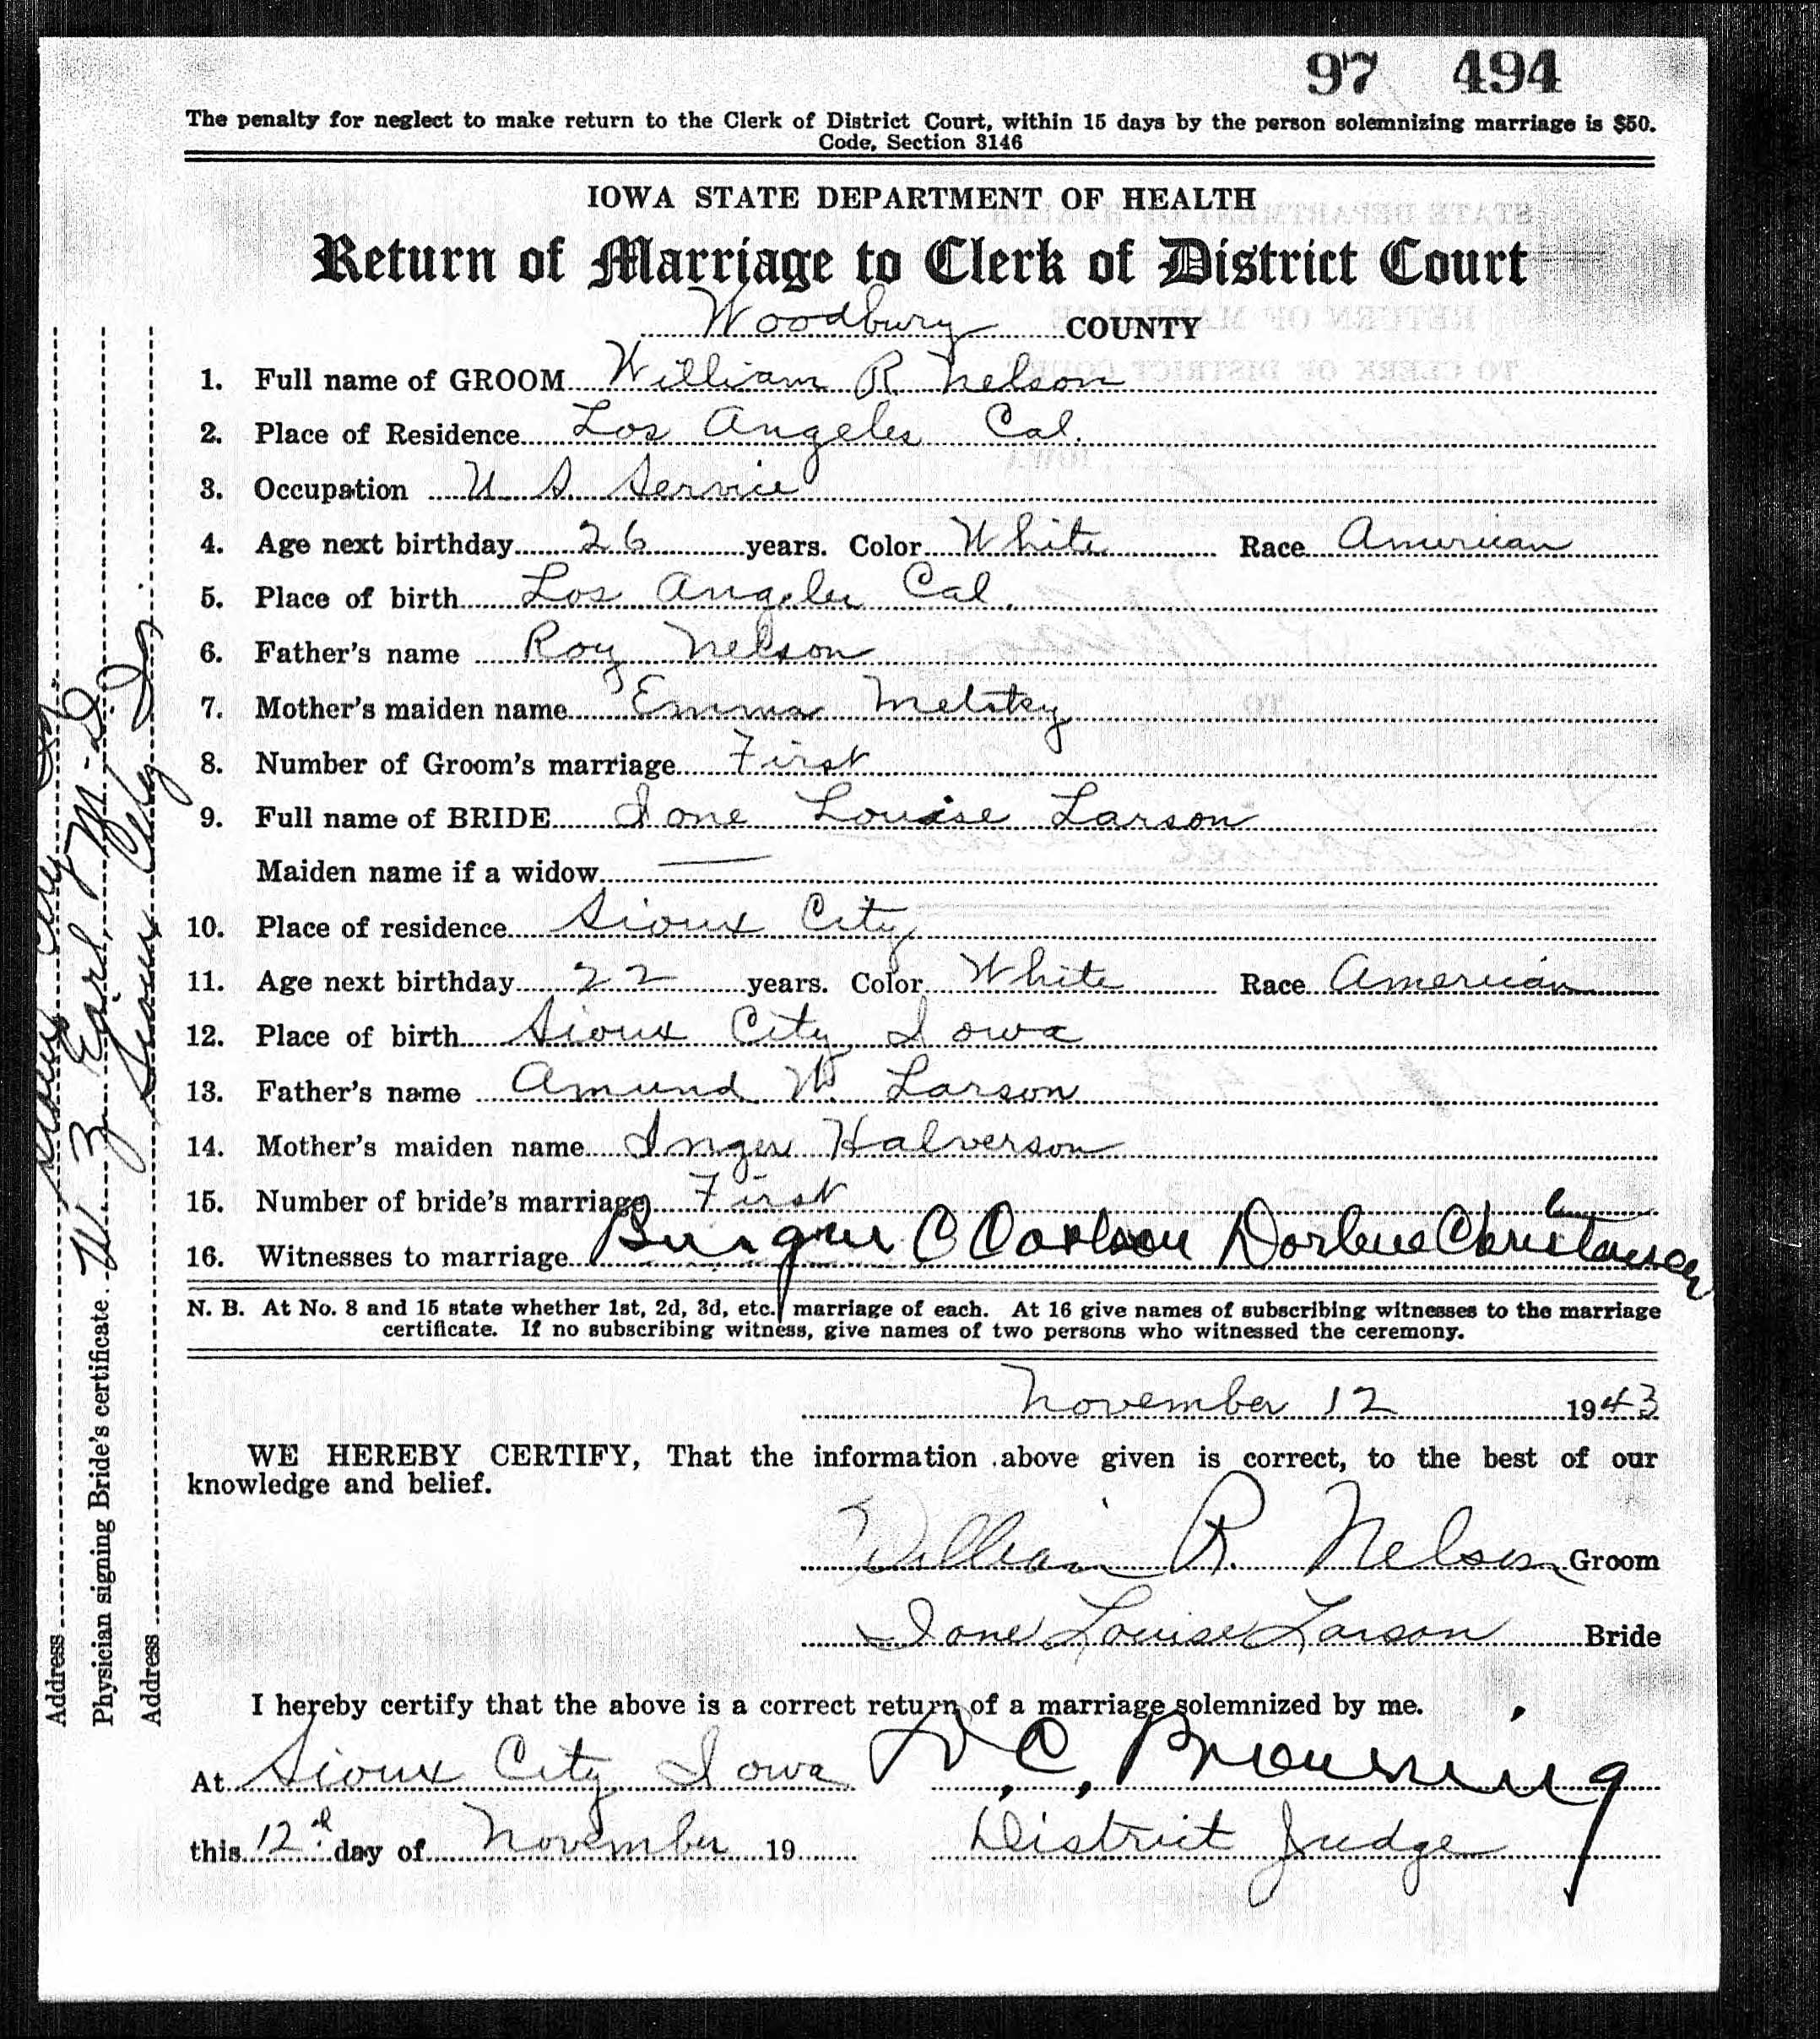 William Nelson and Ione Louise Larson Marriage License